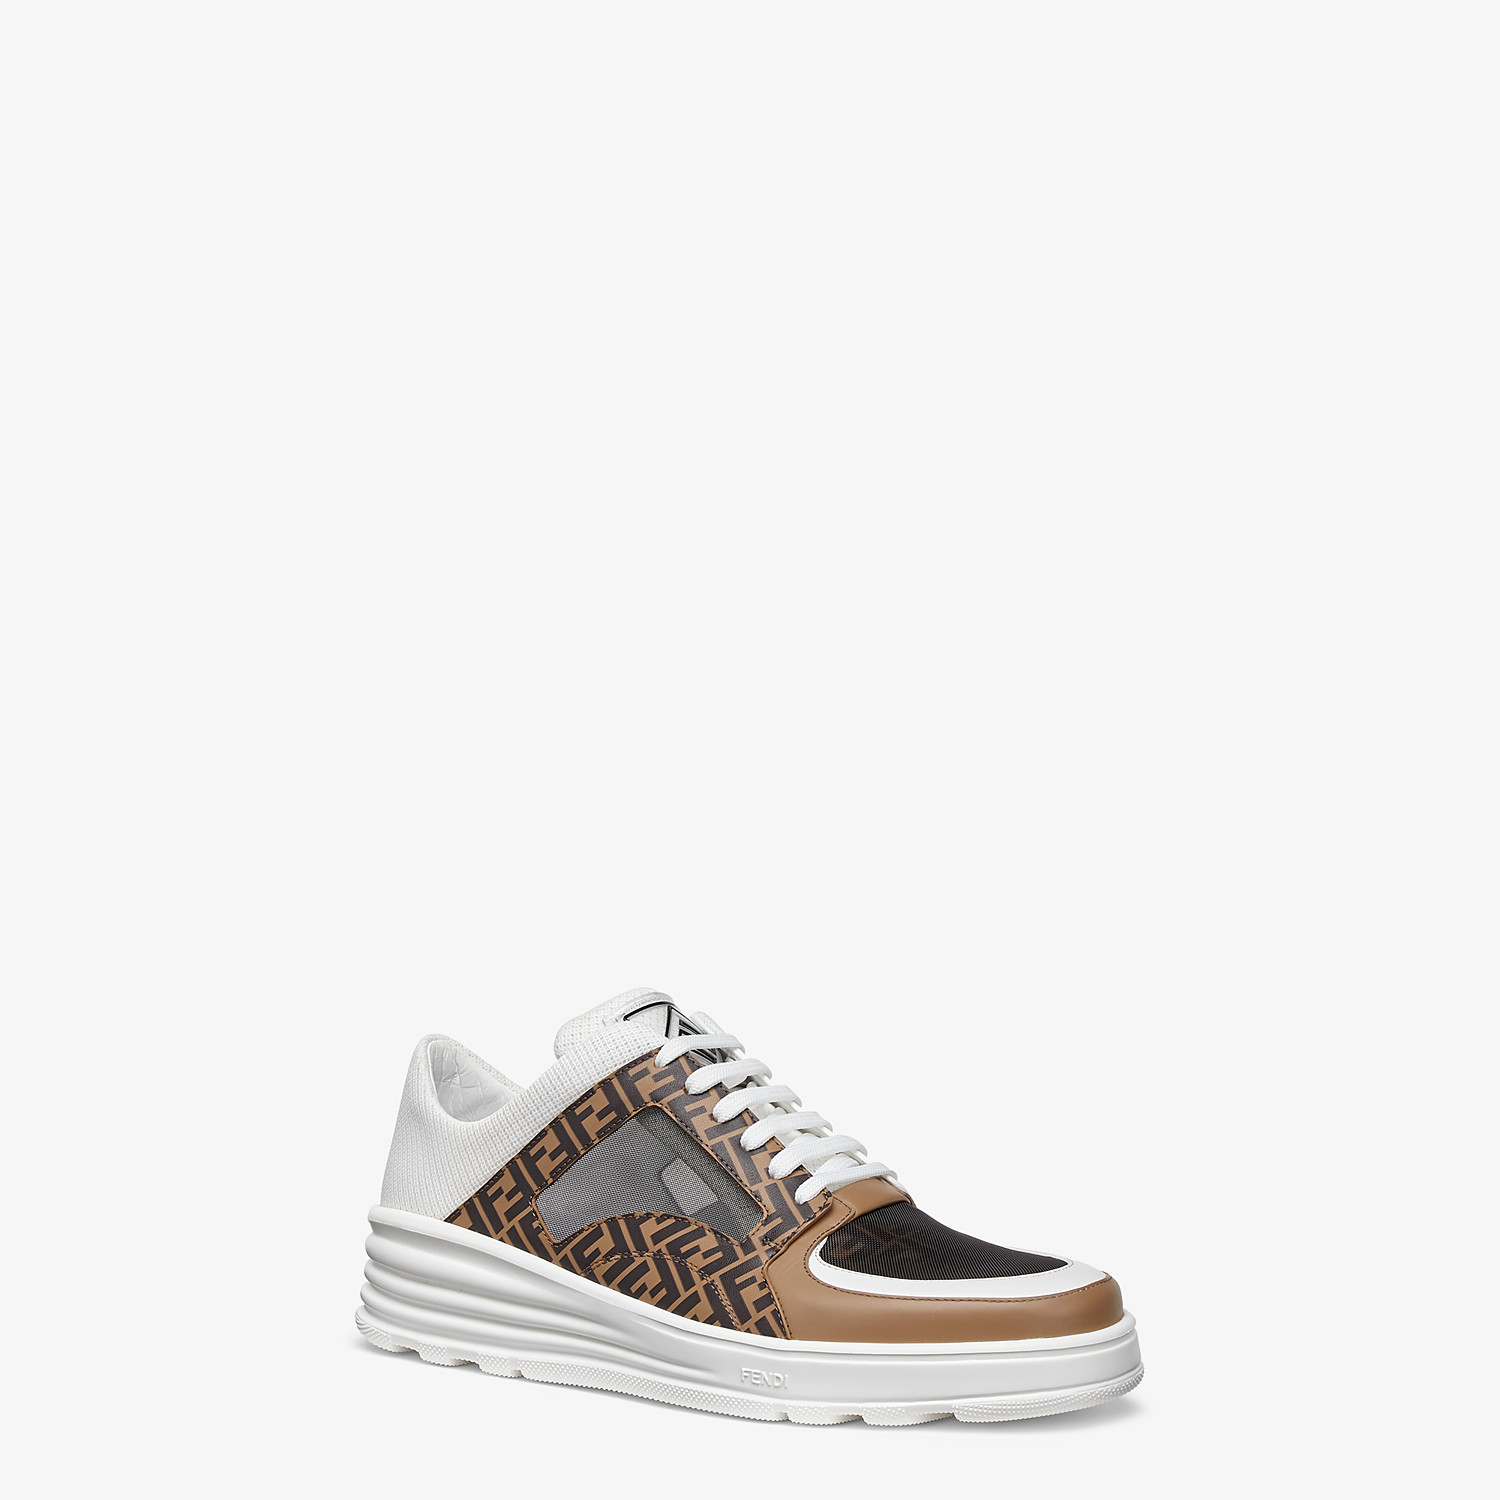 FENDI SNEAKERS - Brown leather low tops - view 2 detail